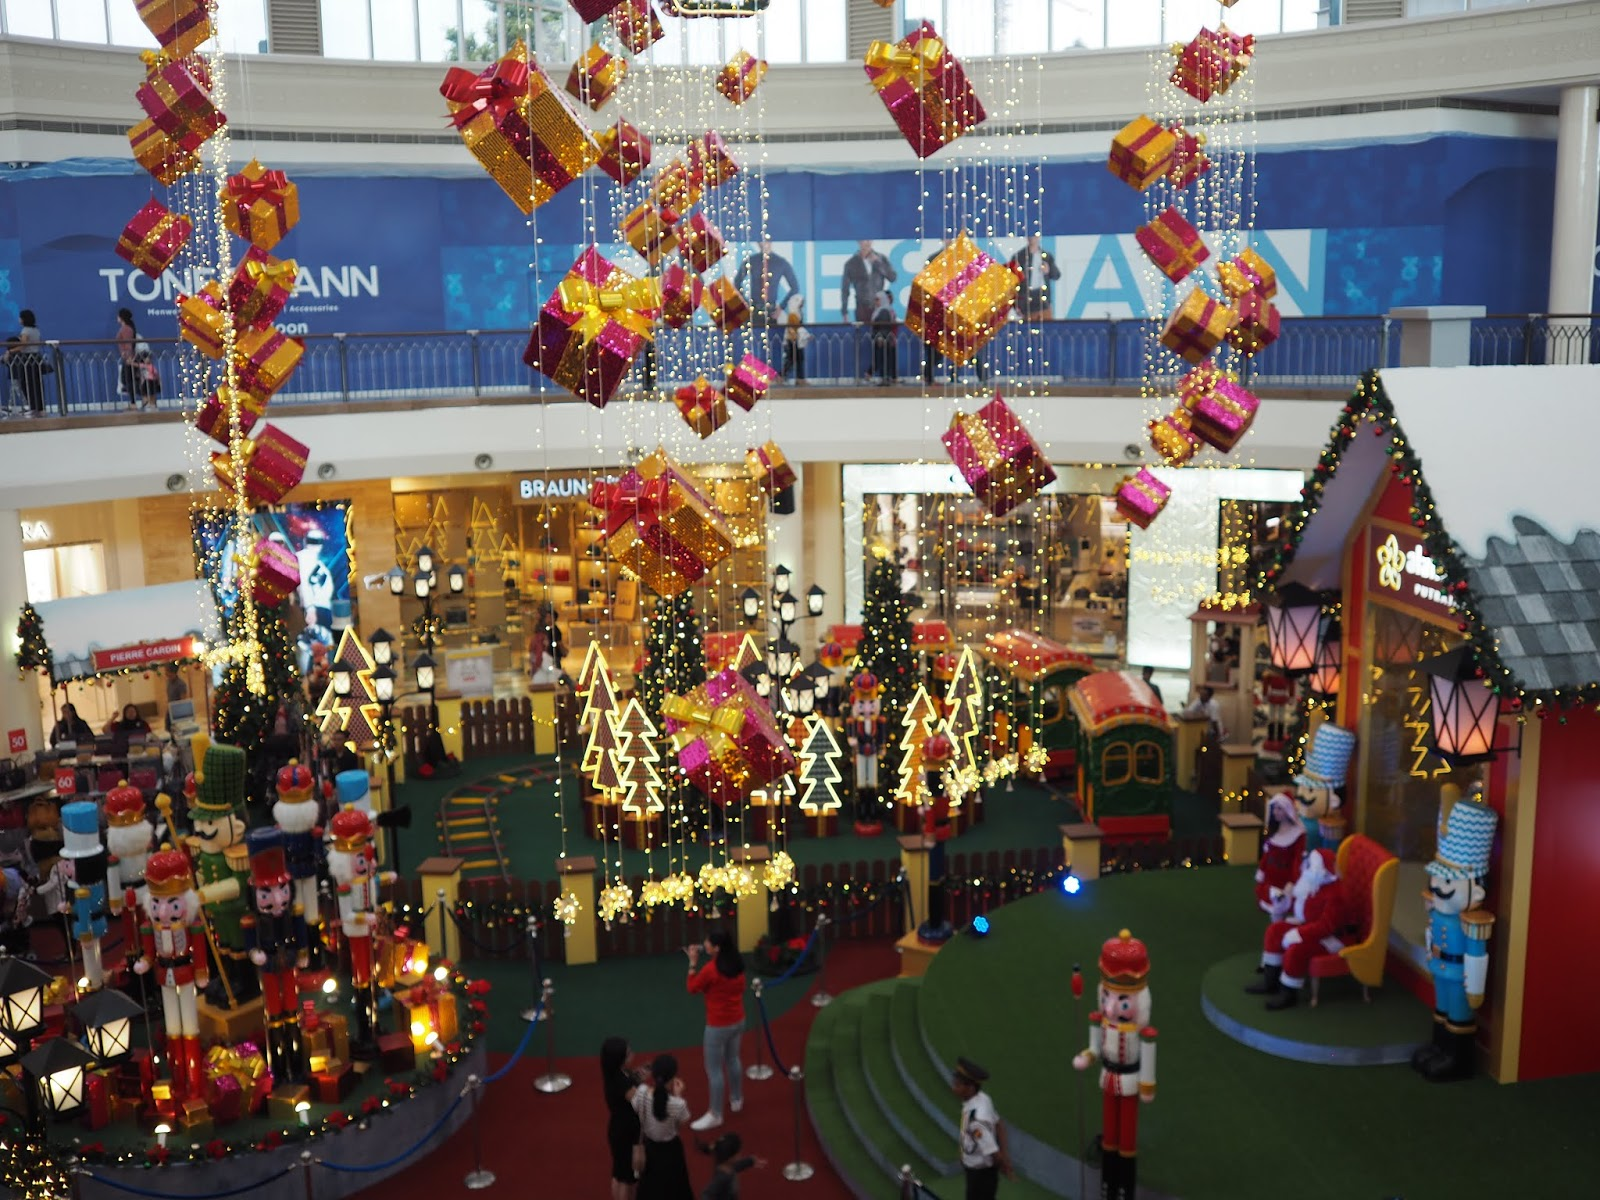 482700c8ab475 Head down to Alamanda Shopping Centre for the best Christmas shopping  experience! The mall boasts a dazzling Christmas display that greet  visitors to the ...